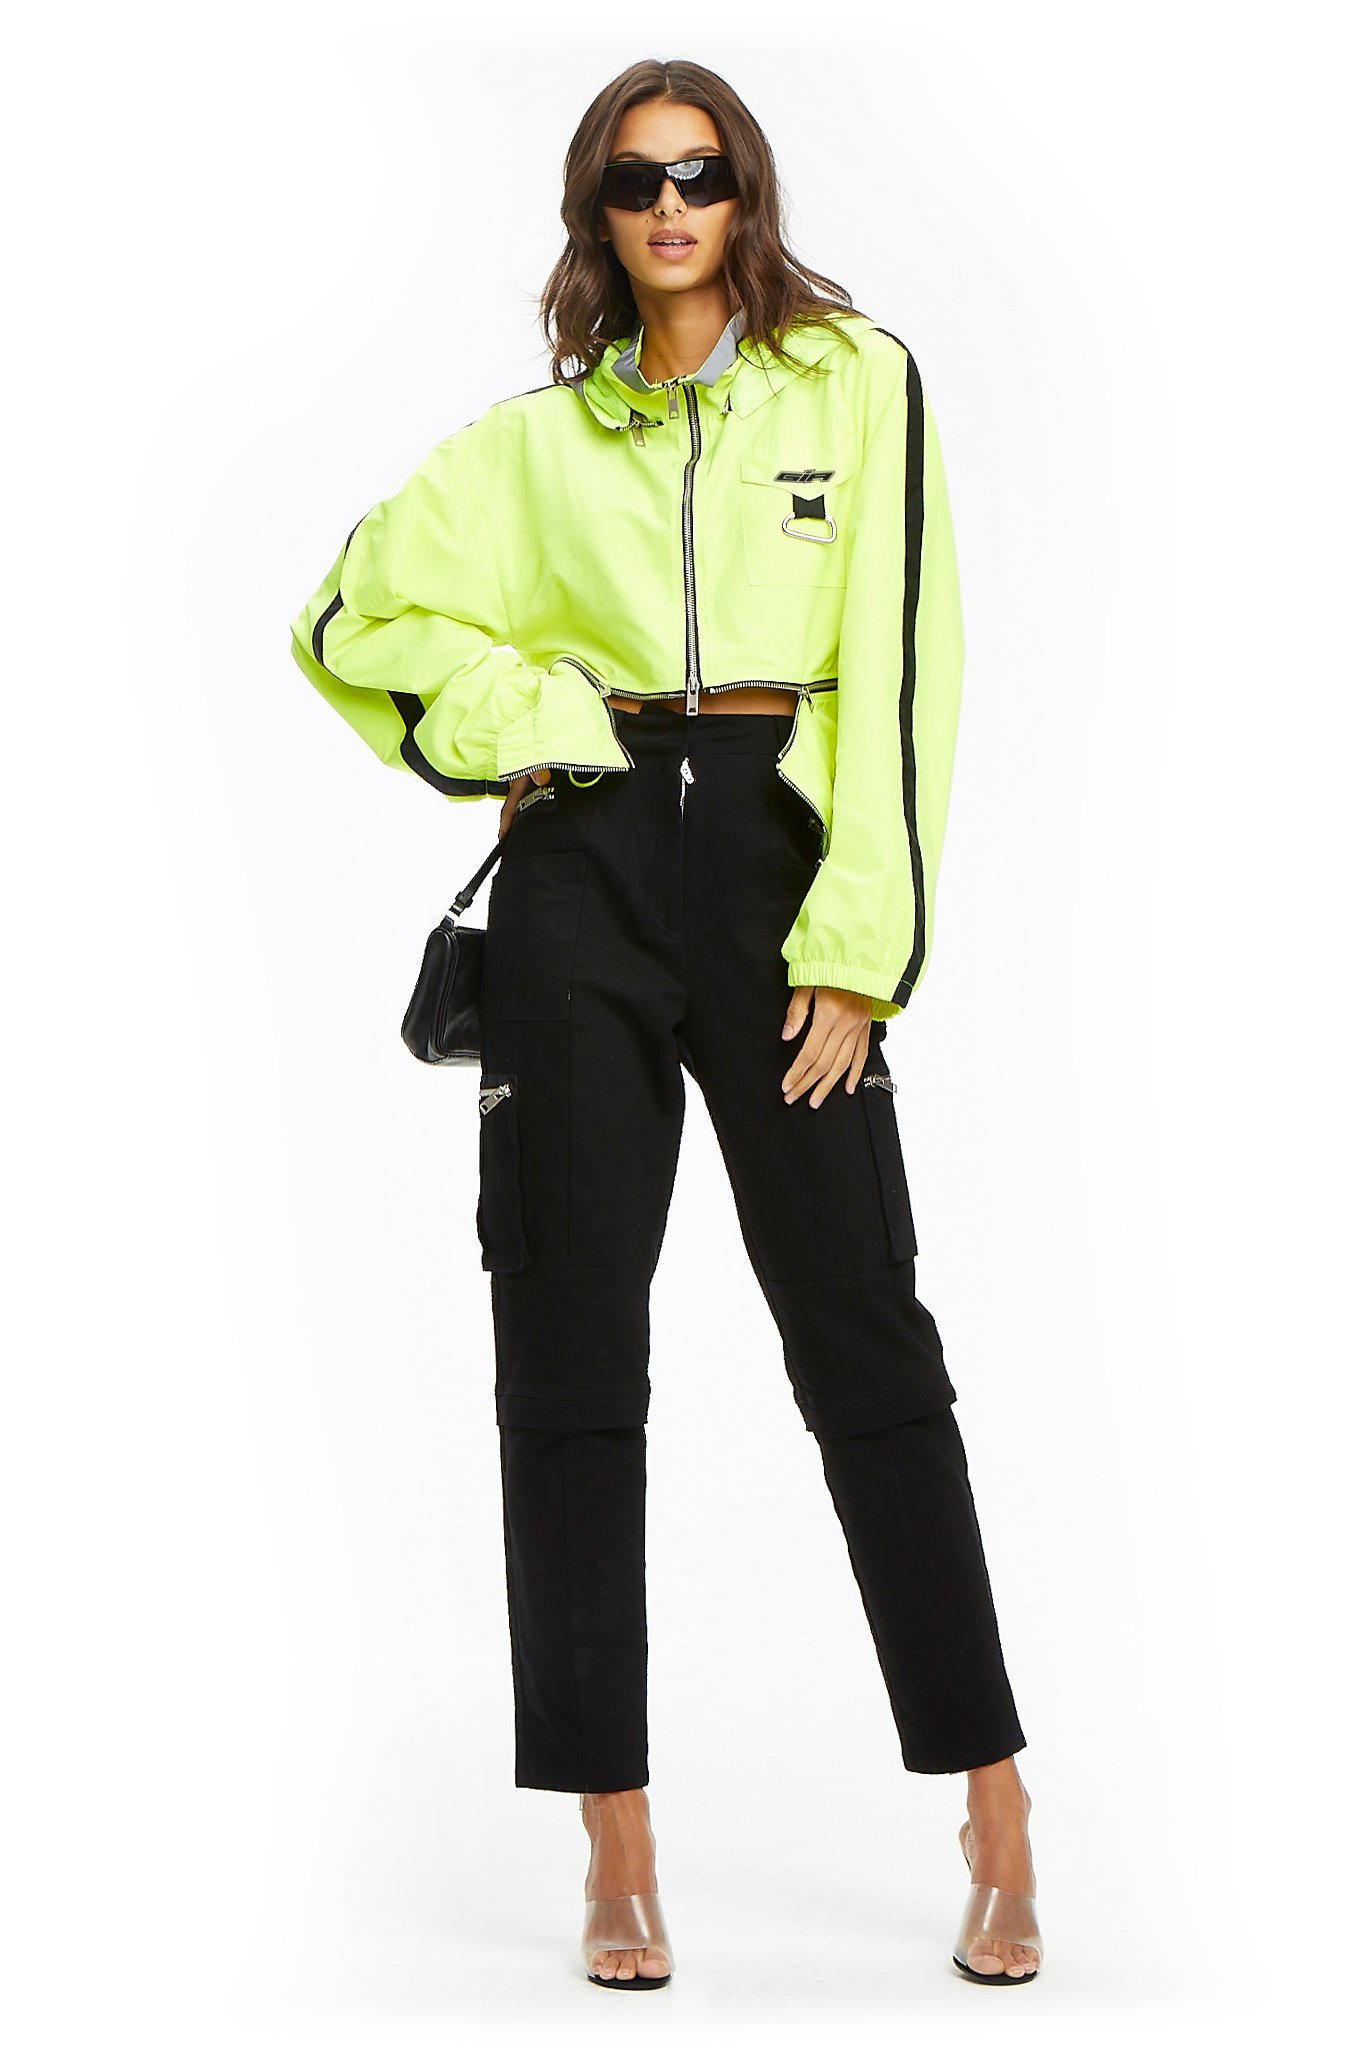 https://iamgia.com/collections/all/products/neptune-jacket-neonyellow